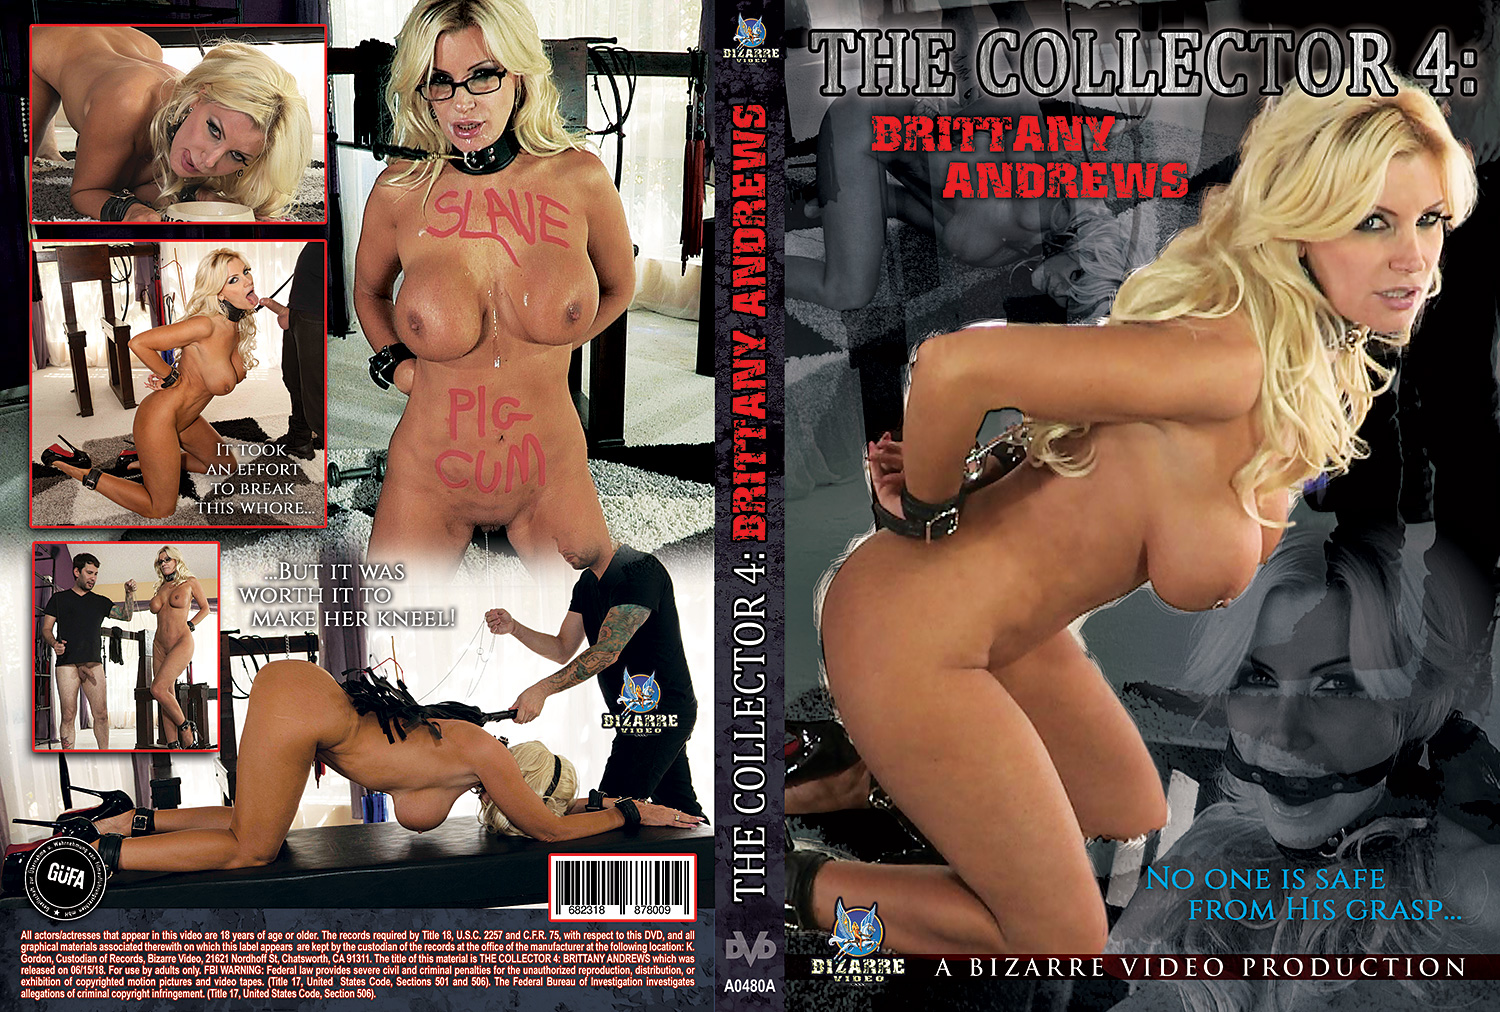 The Collector 4: Brittany Andrews